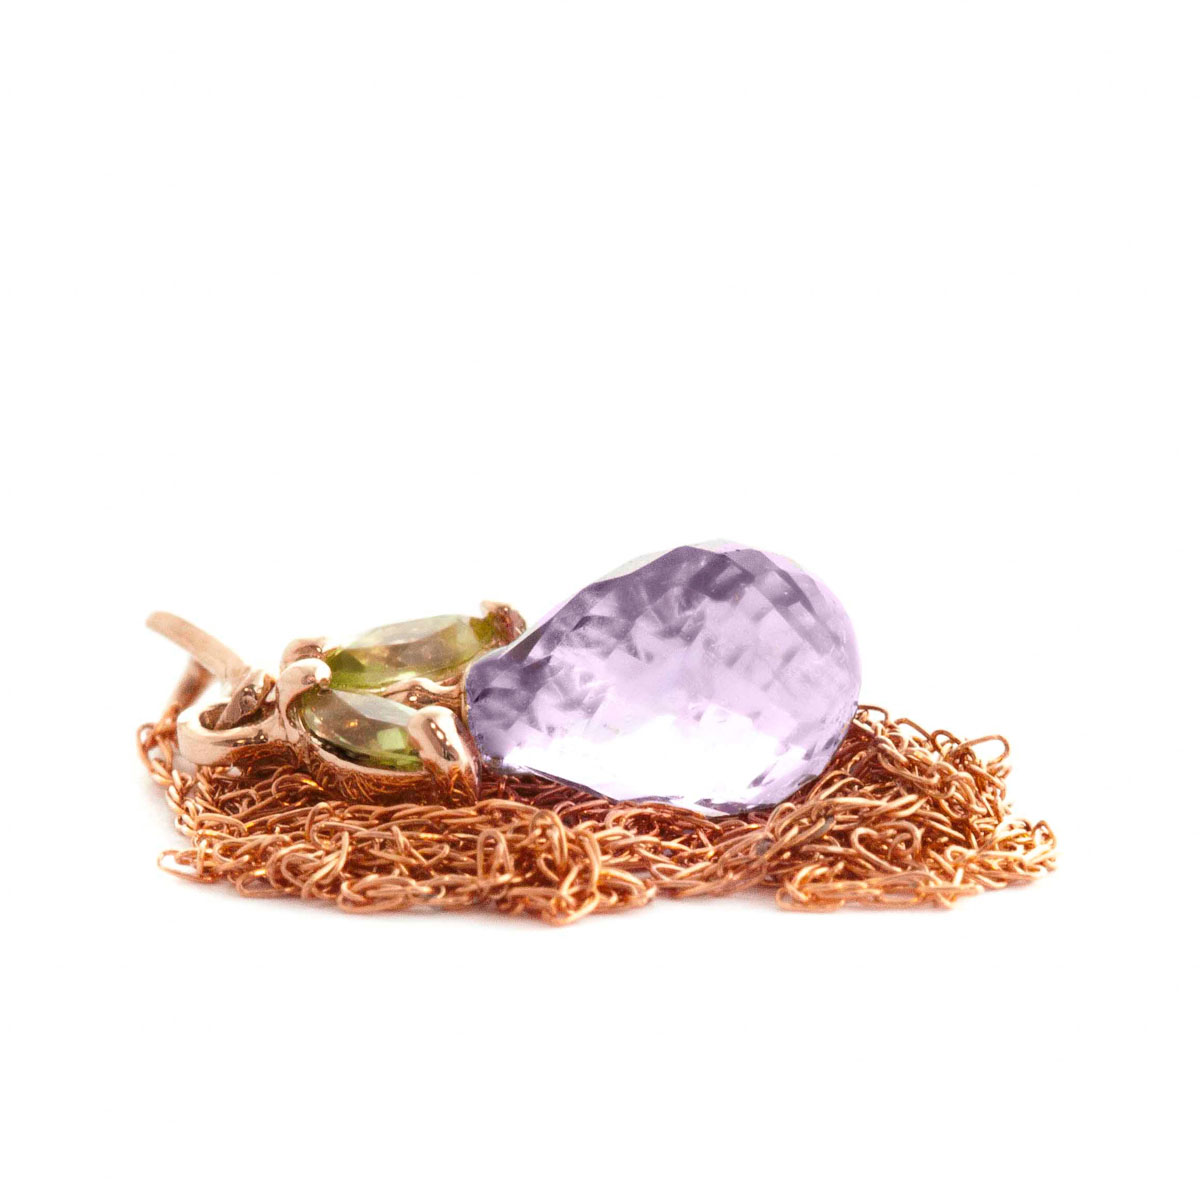 Amethyst & Peridot Snowdrop Pendant Necklace in 9ct Rose Gold